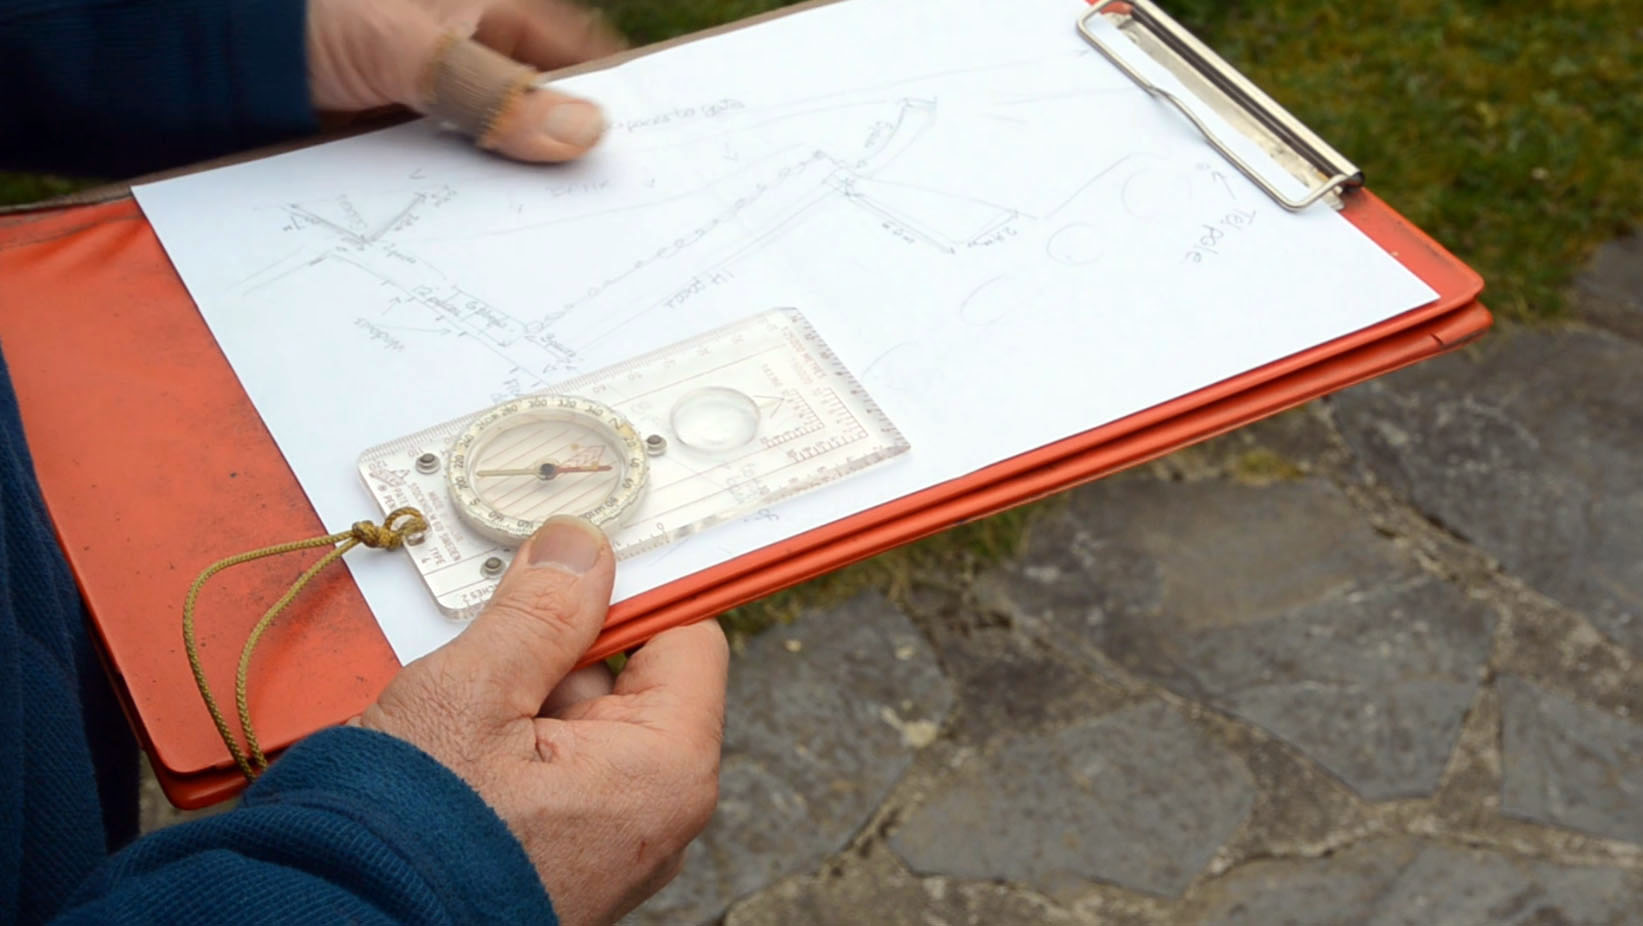 Compass and mapping